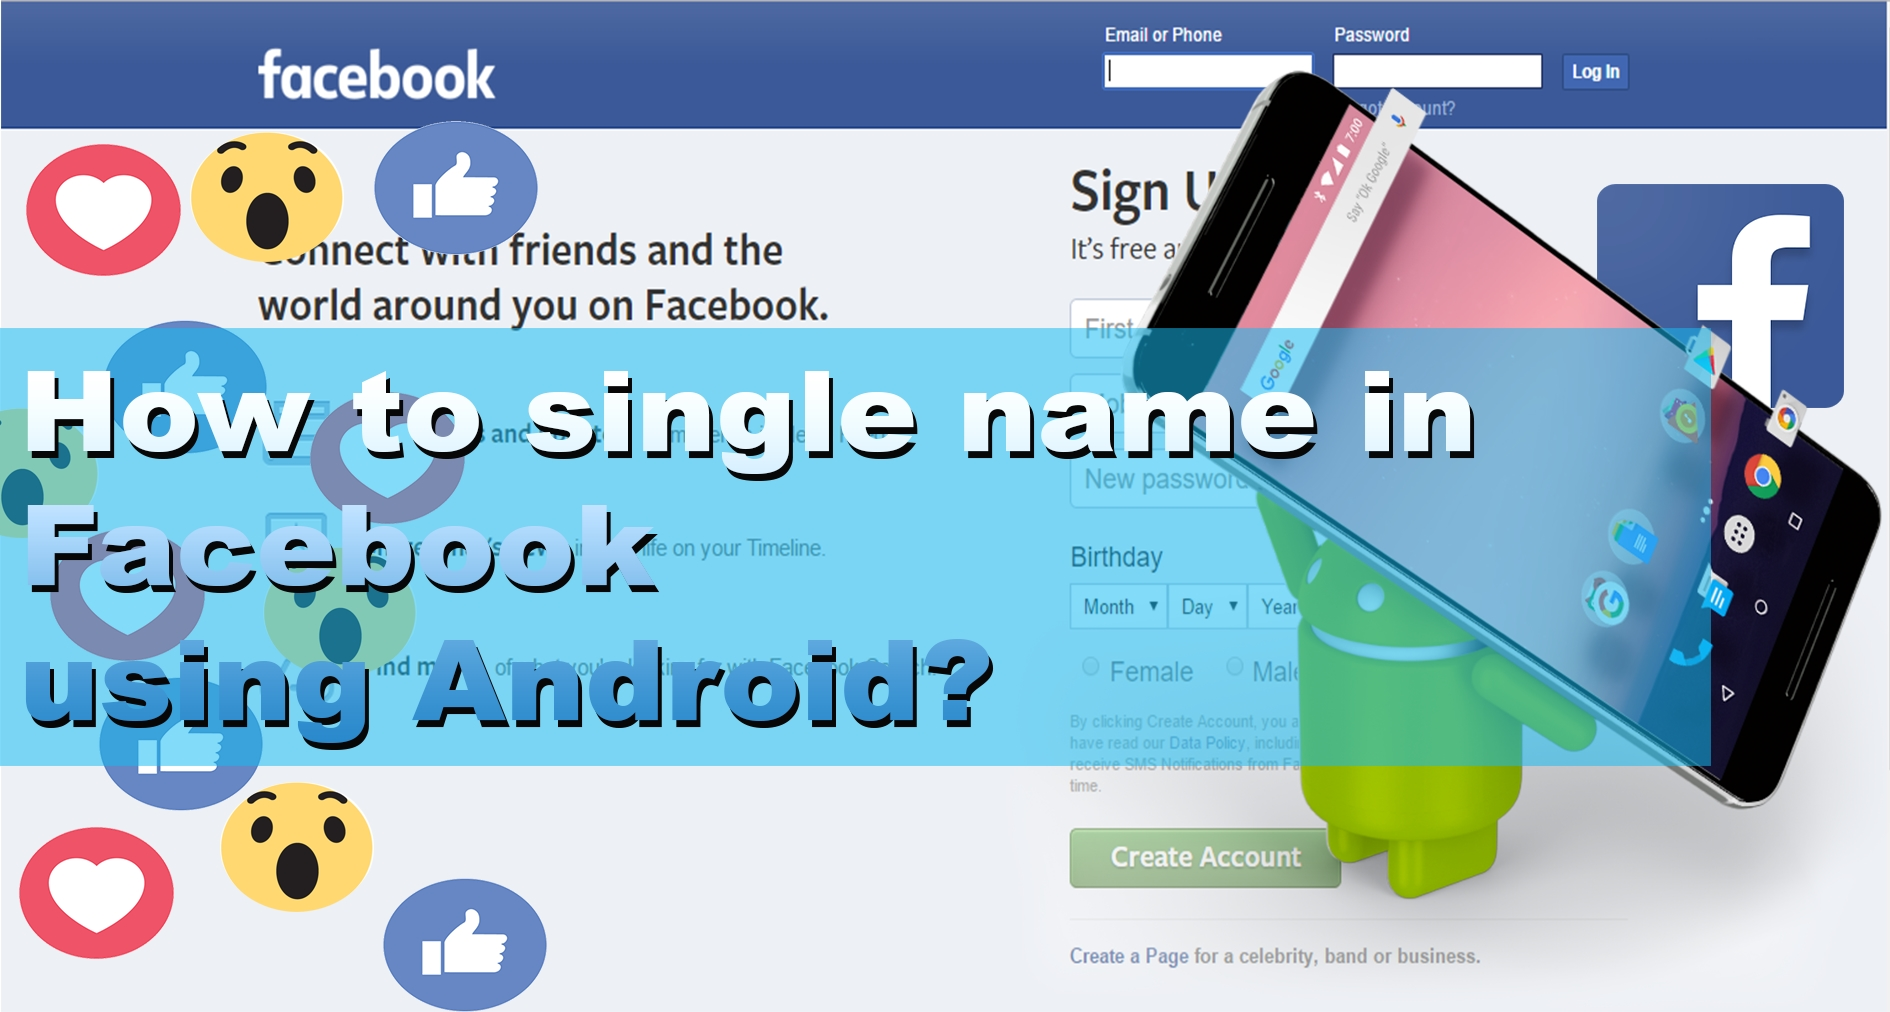 How to single name on Facebook using Android - Bl4nkcode